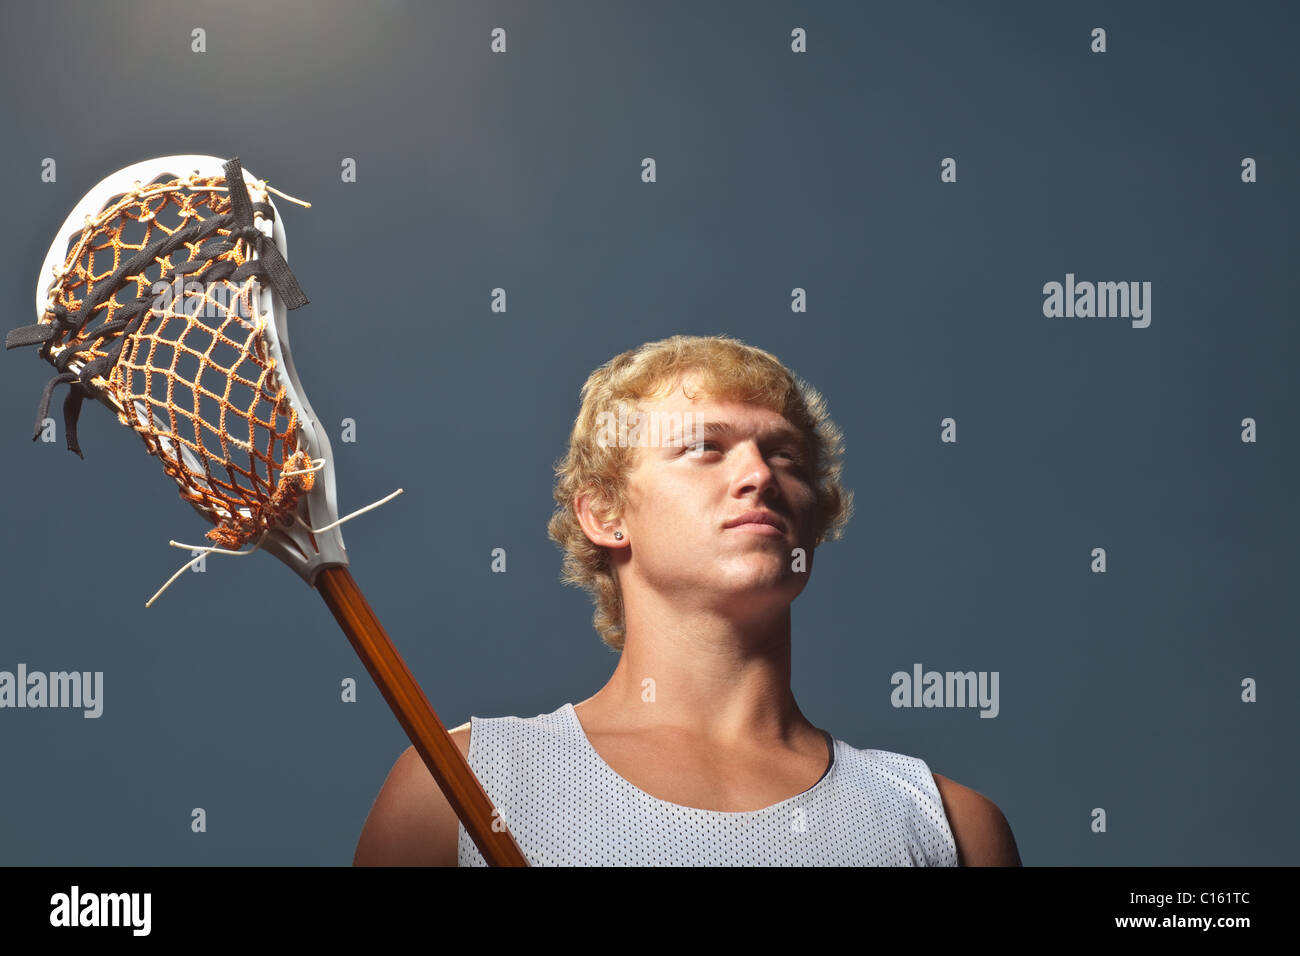 Lacrosse player con lacrosse stick Immagini Stock